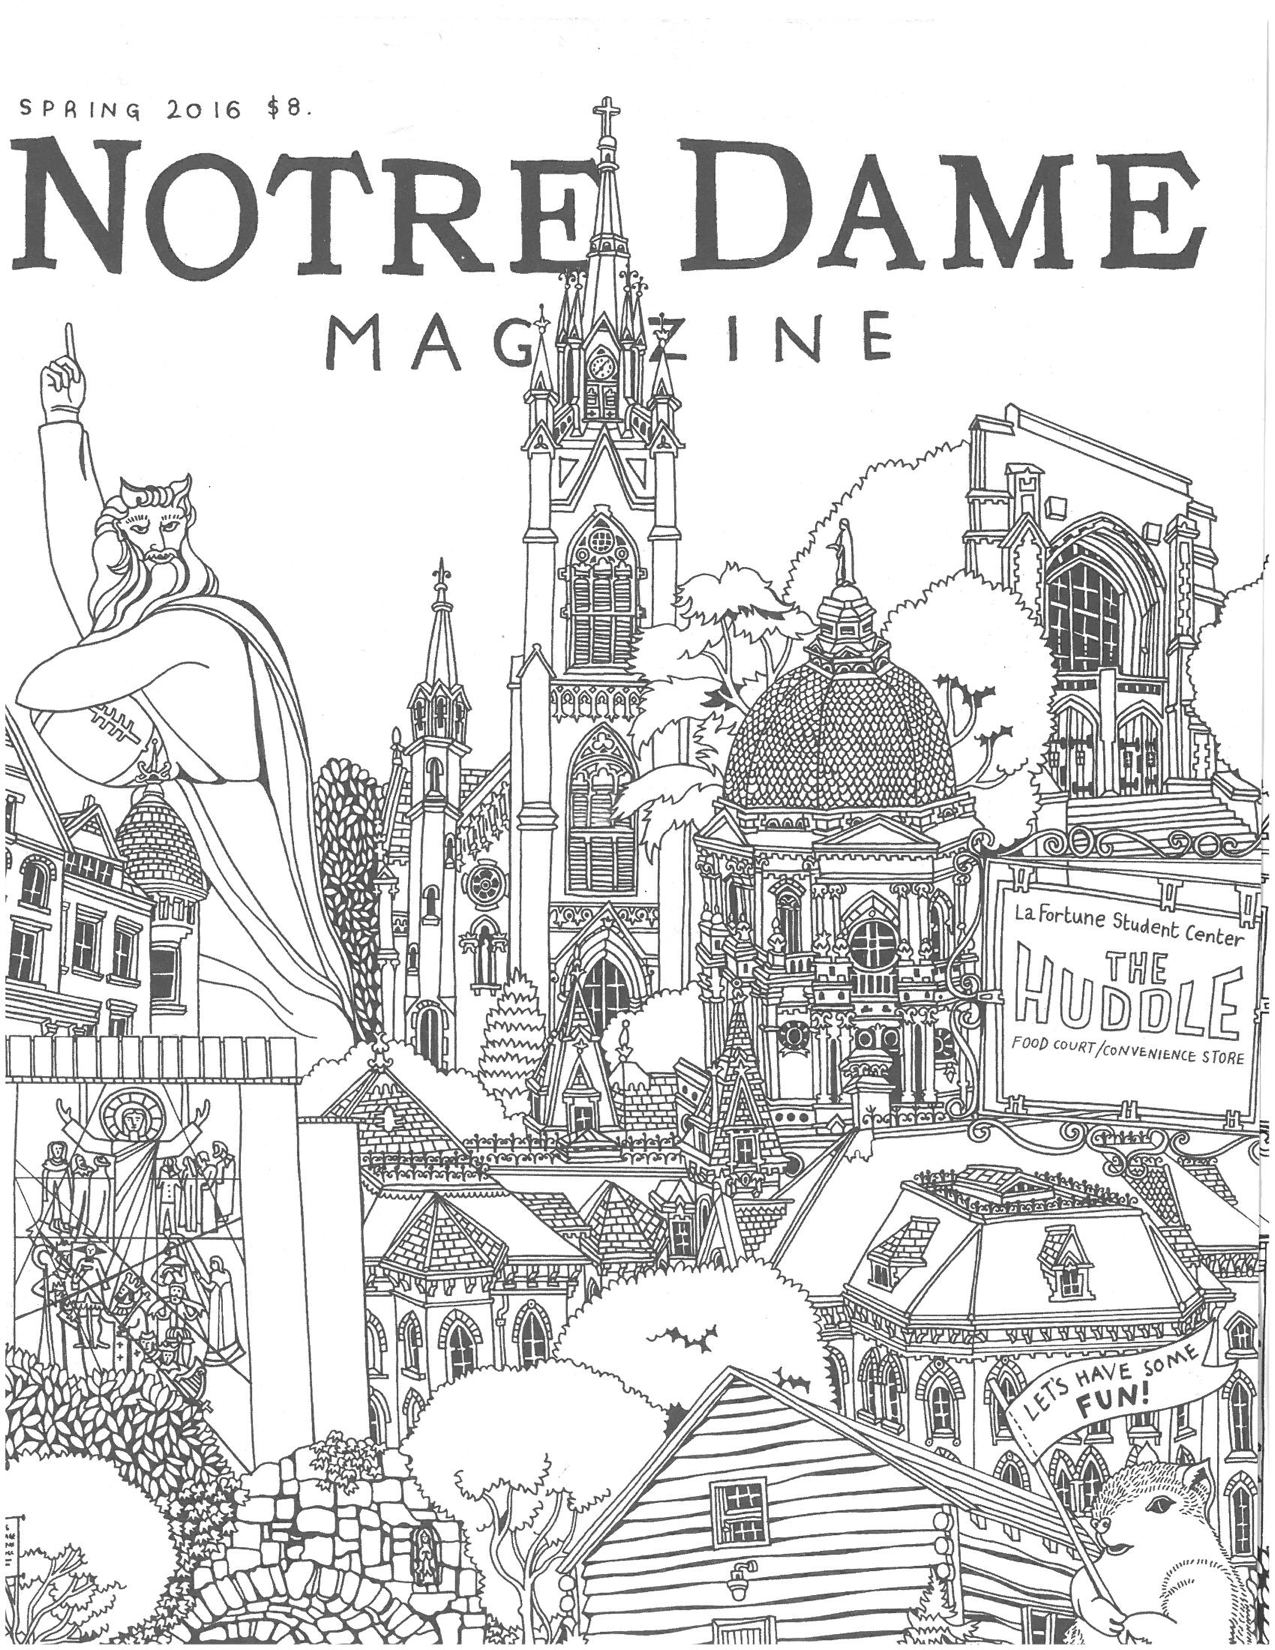 ND Magazine Cover Spring 2016.png